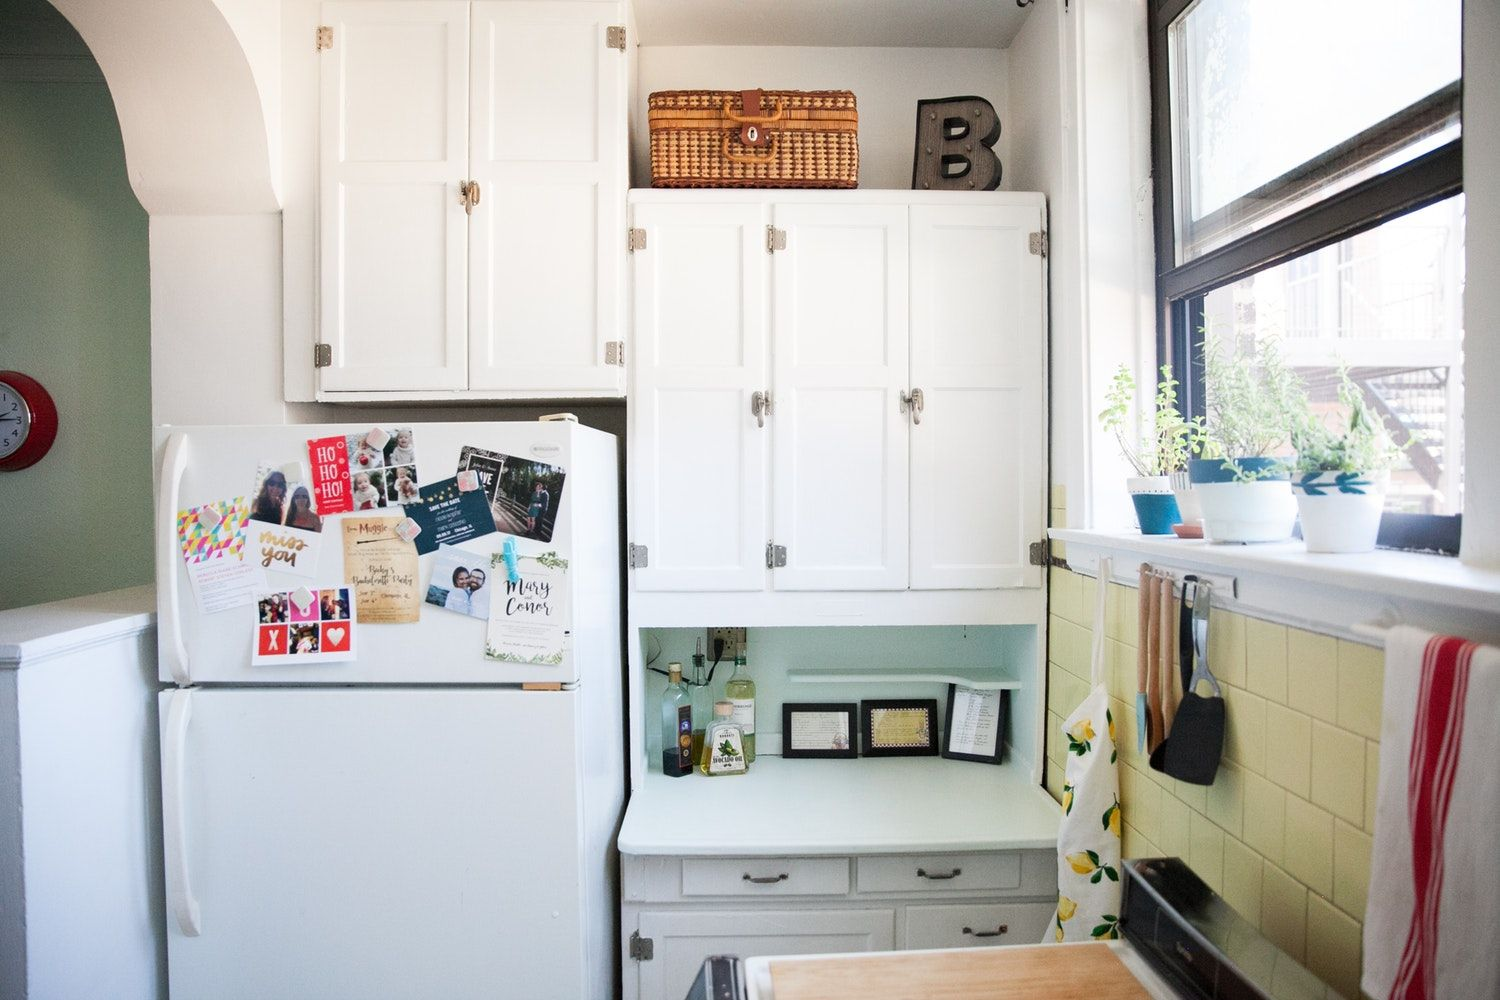 The 21 Best Small Kitchen Ideas Of All Time  Small Spaces Amazing Best Small Kitchen Designs 2018